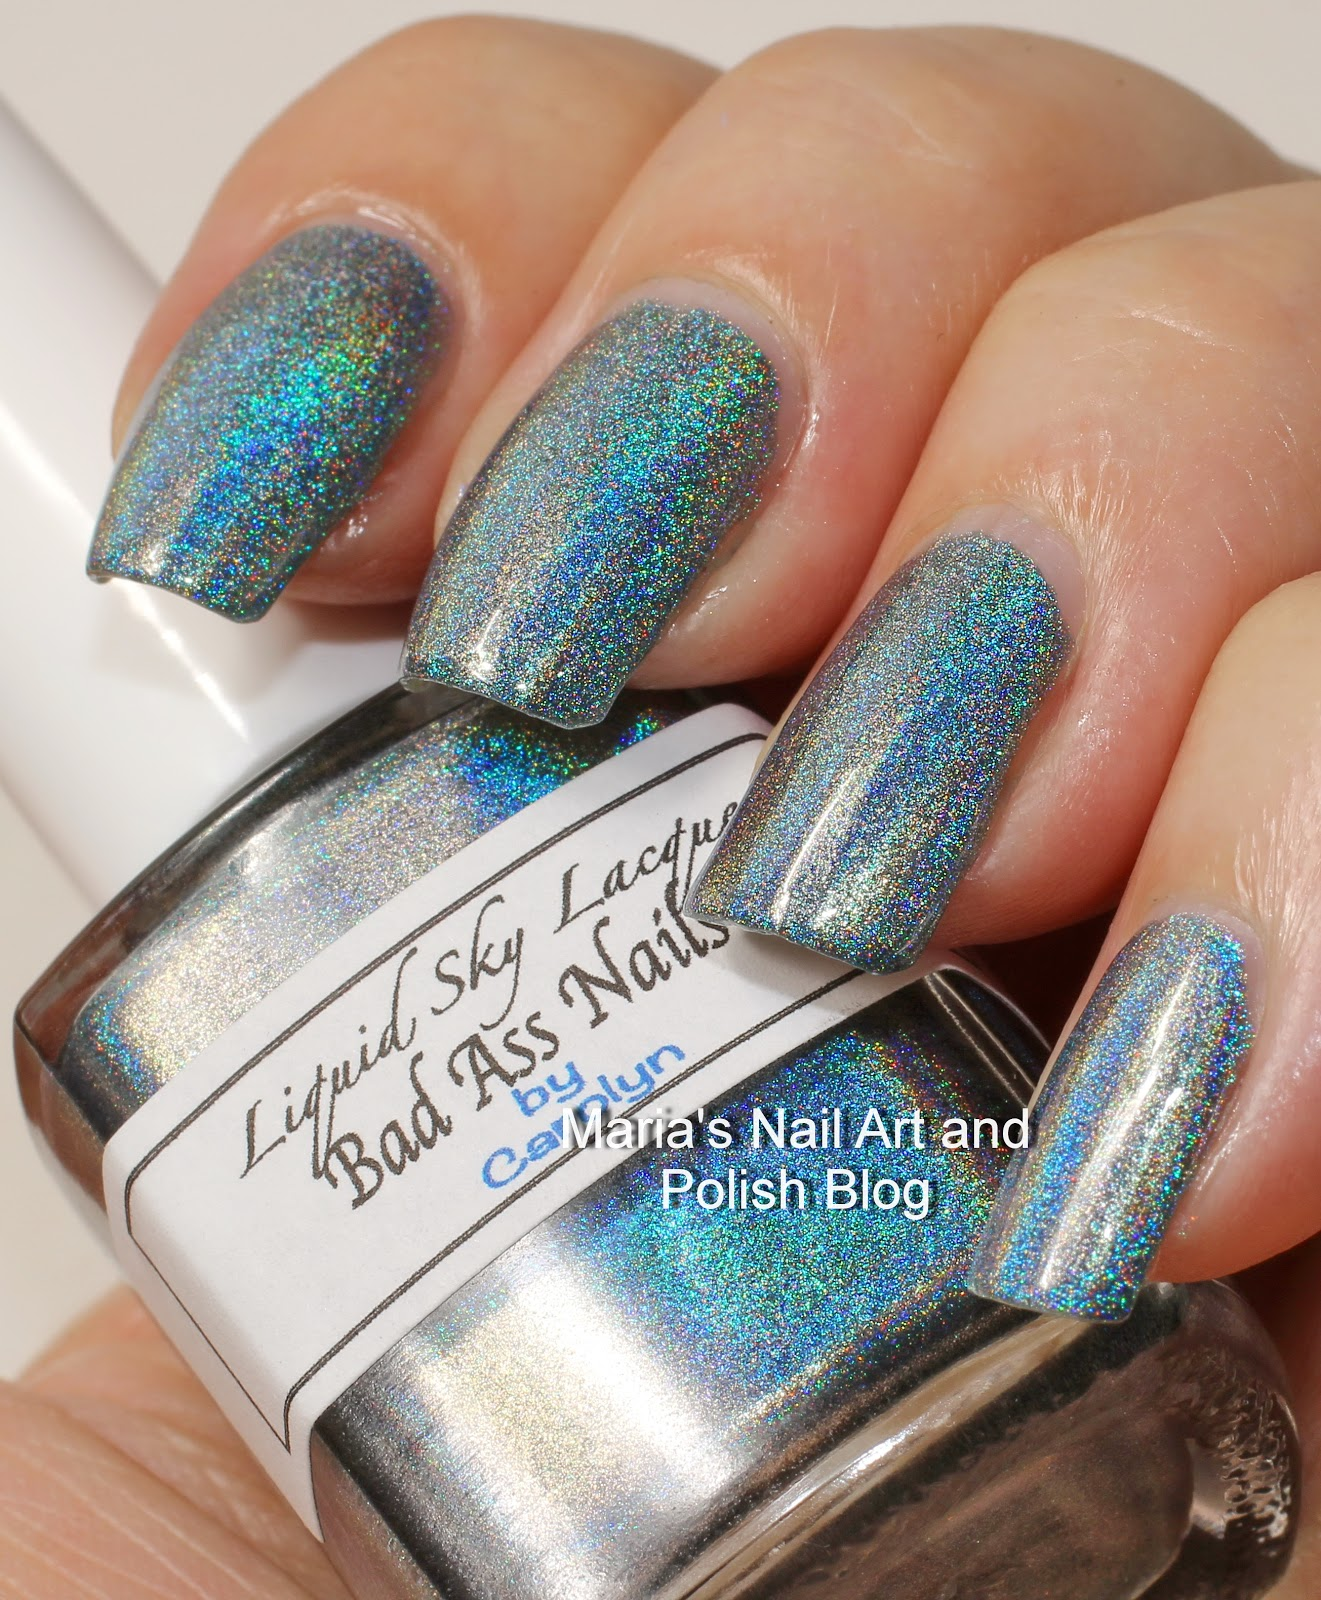 Marias nail art and polish blog liquid sky lacquer bad ass nails liquid sky lacquer bad ass nails is an extreme deep blue holo and indoors and in the shade i would call it a steel grey with a touch of blue prinsesfo Images